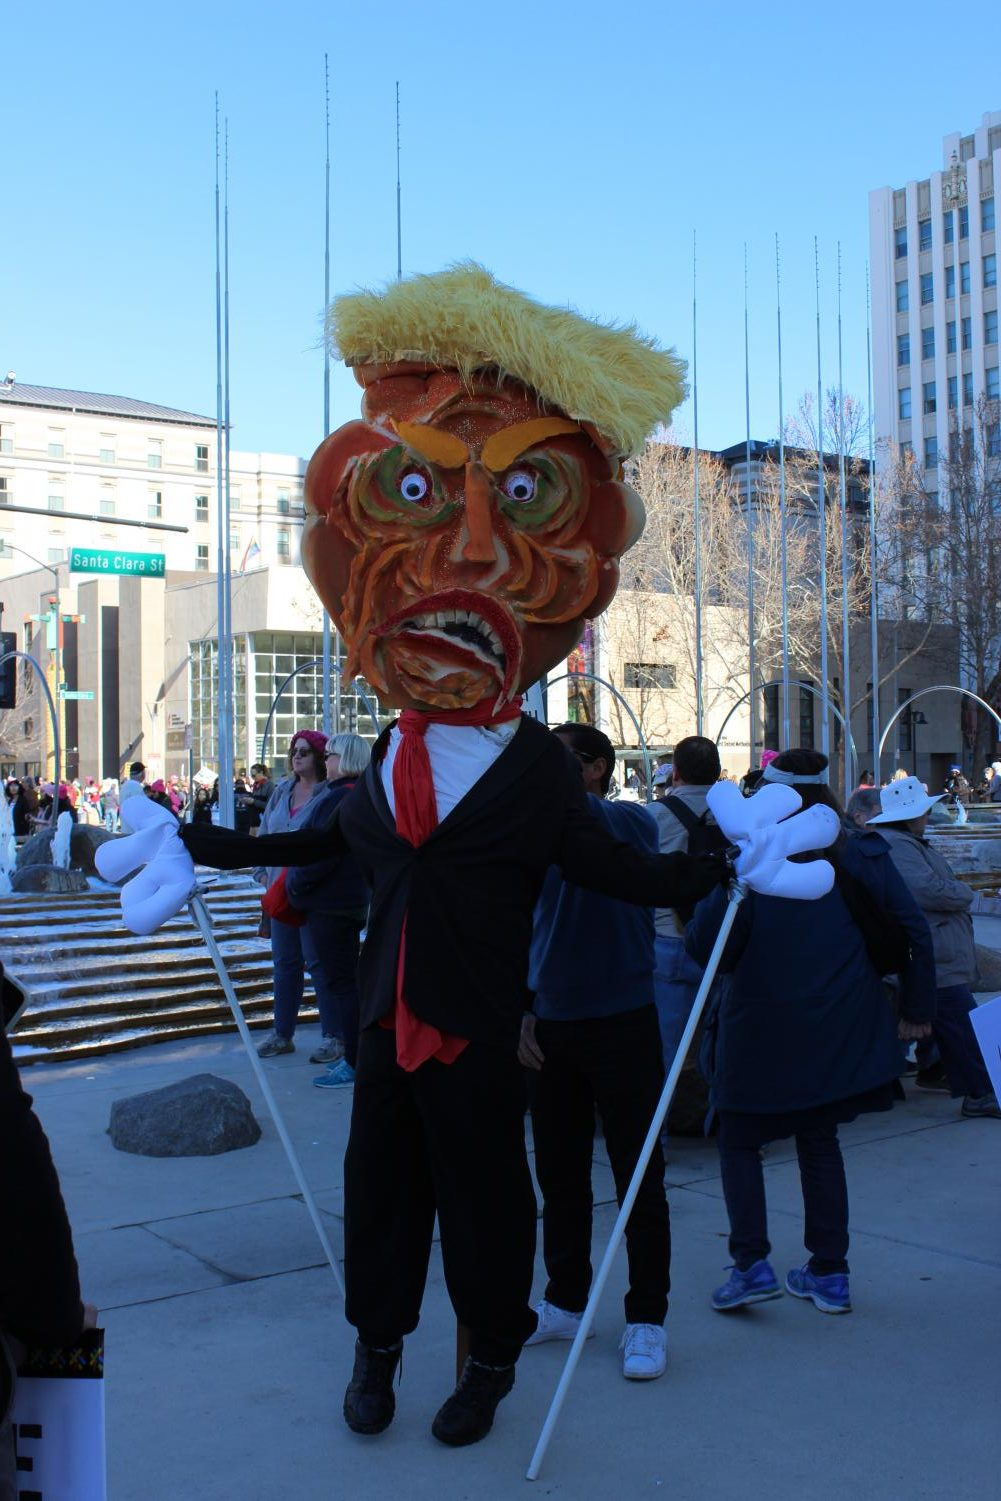 A Donald Trump costume held the center of attention at Women's March San Jose